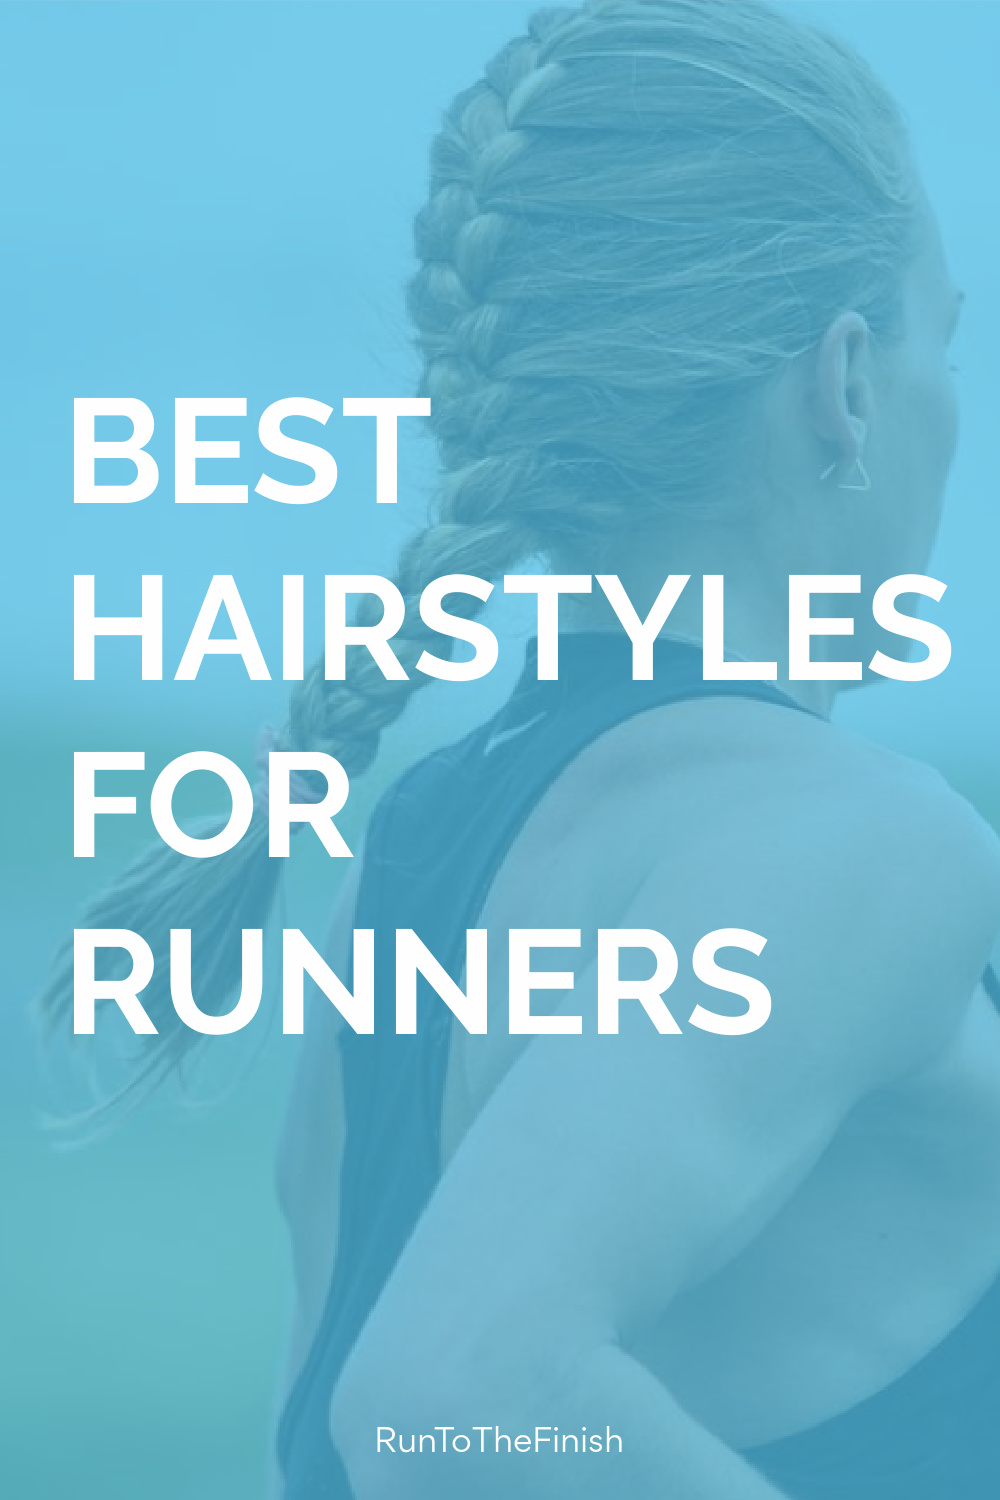 Best Hairstyles for Running